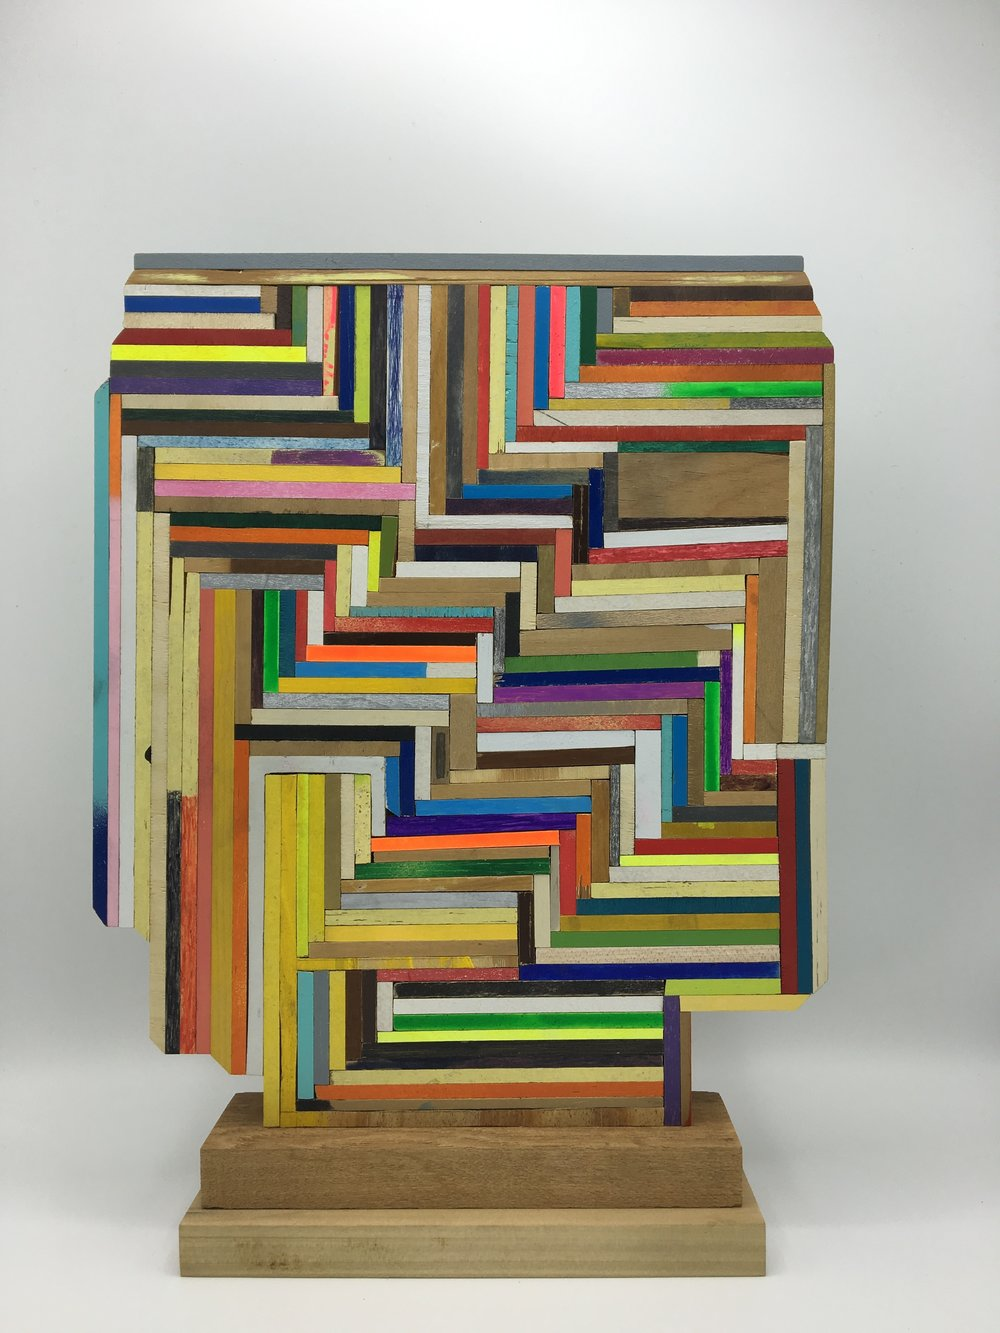 Damien Hoar de Galvan | Monument | 2016 | Wood, Paint, Colored Pencil, Glue | 14 x 11 x 3 in.